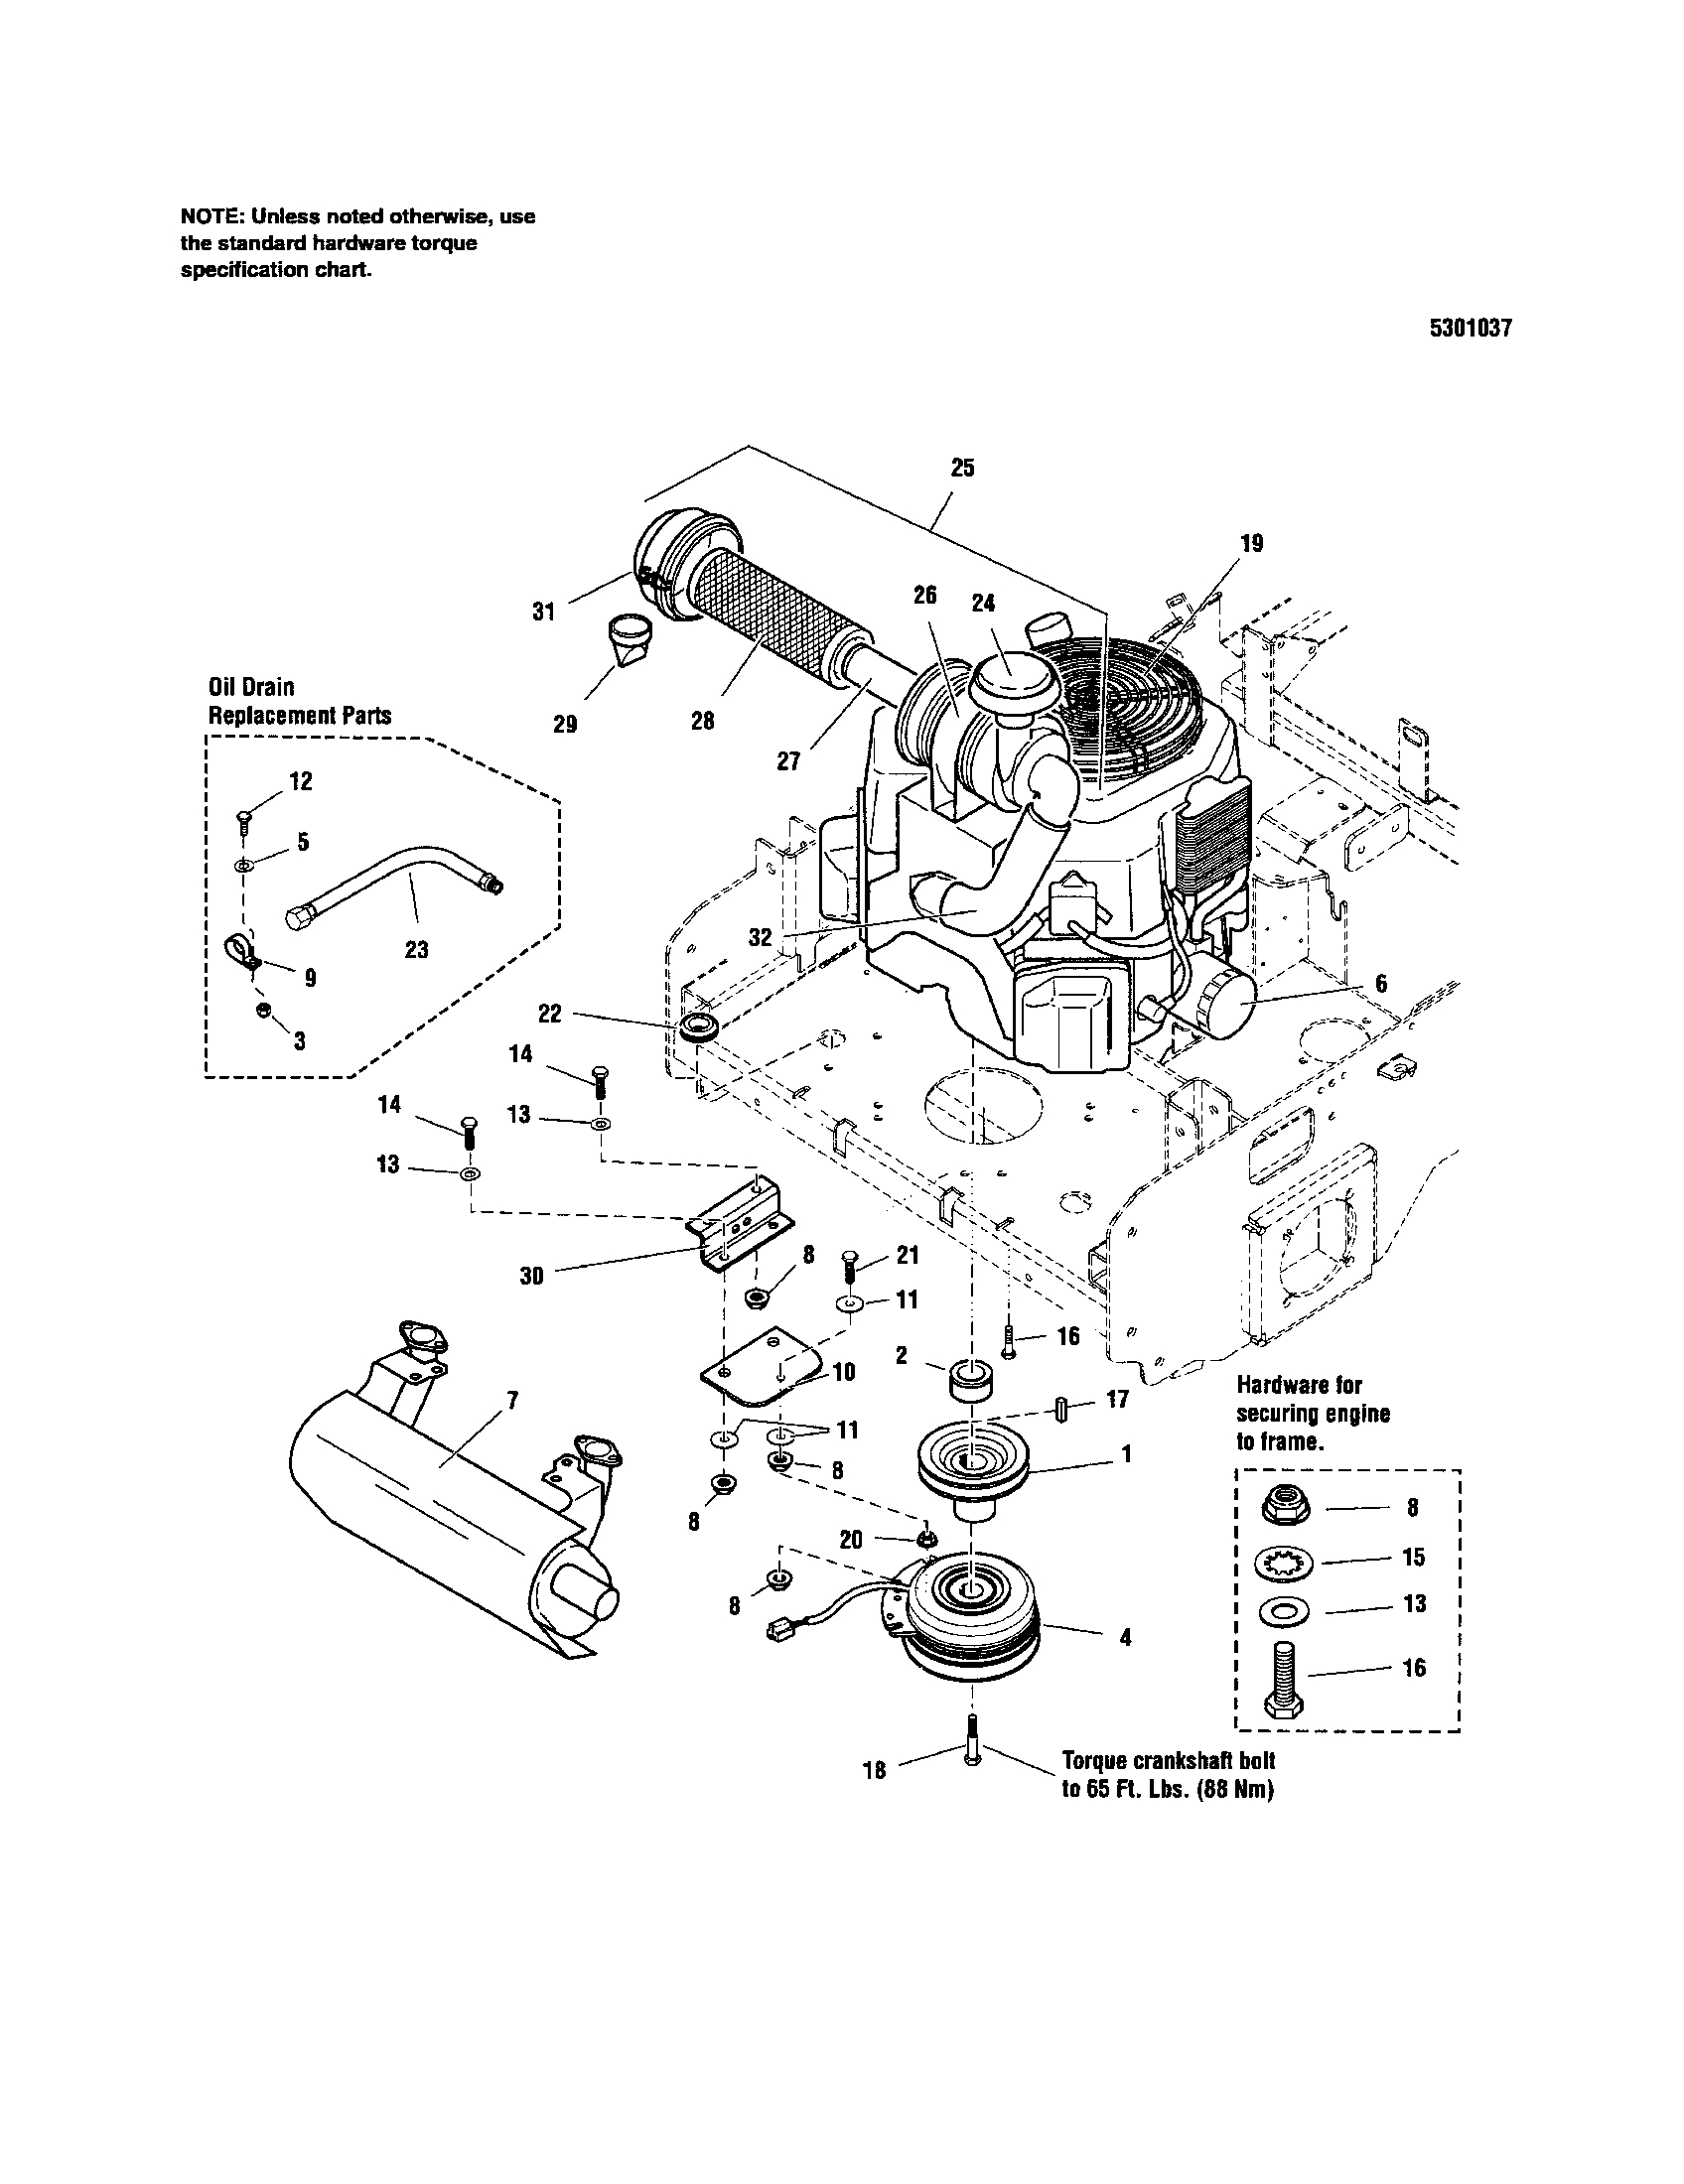 Riding Mower Engine Diagram | Wiring Library - Kohler Engine Wiring Diagram